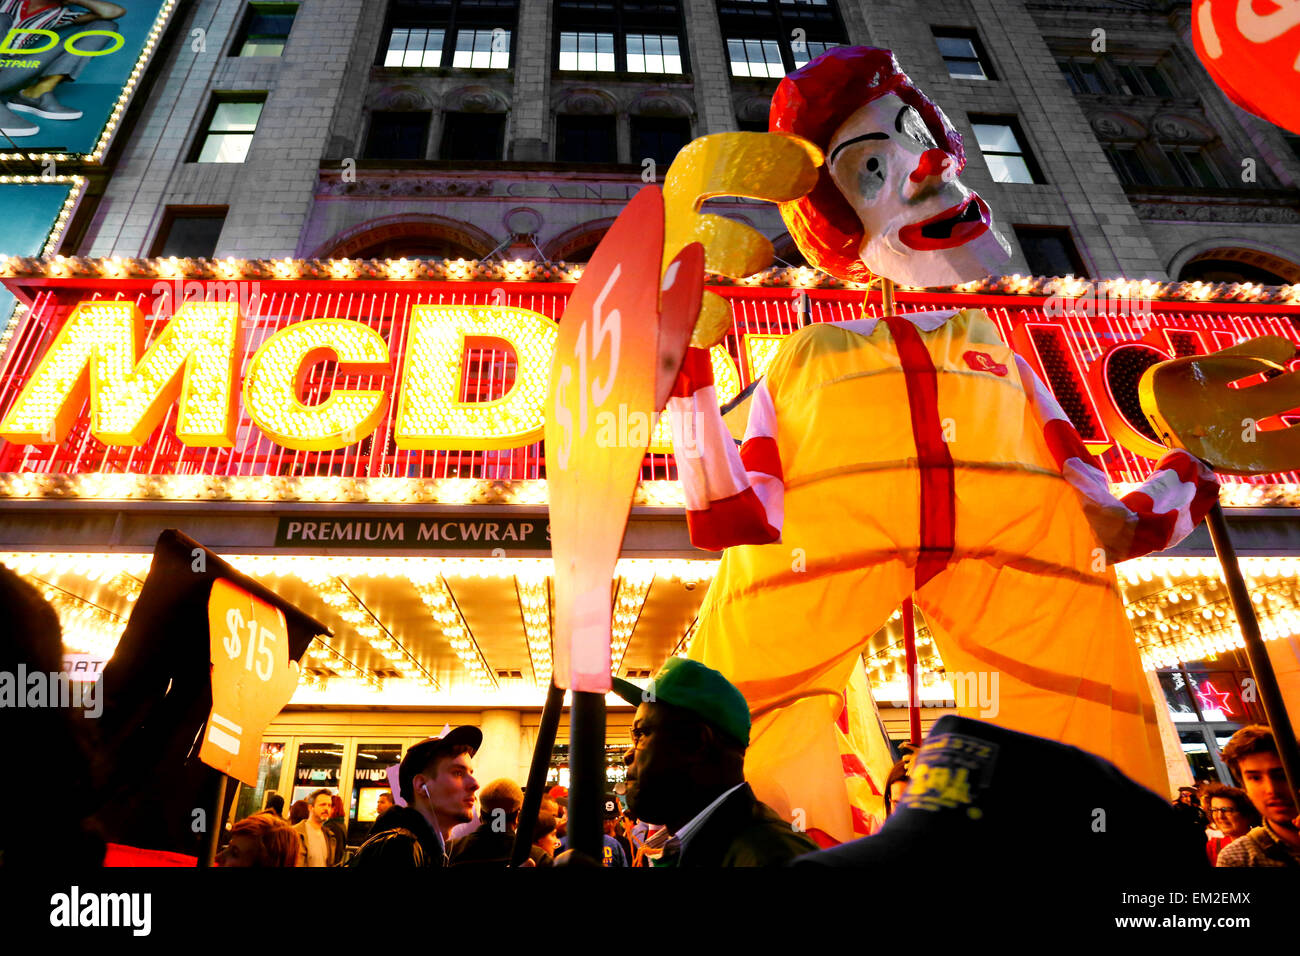 Activists parade a large 'Ronnie McDonald' puppet in front of McDonalds at a Fight for $15 demonstration - Stock Image